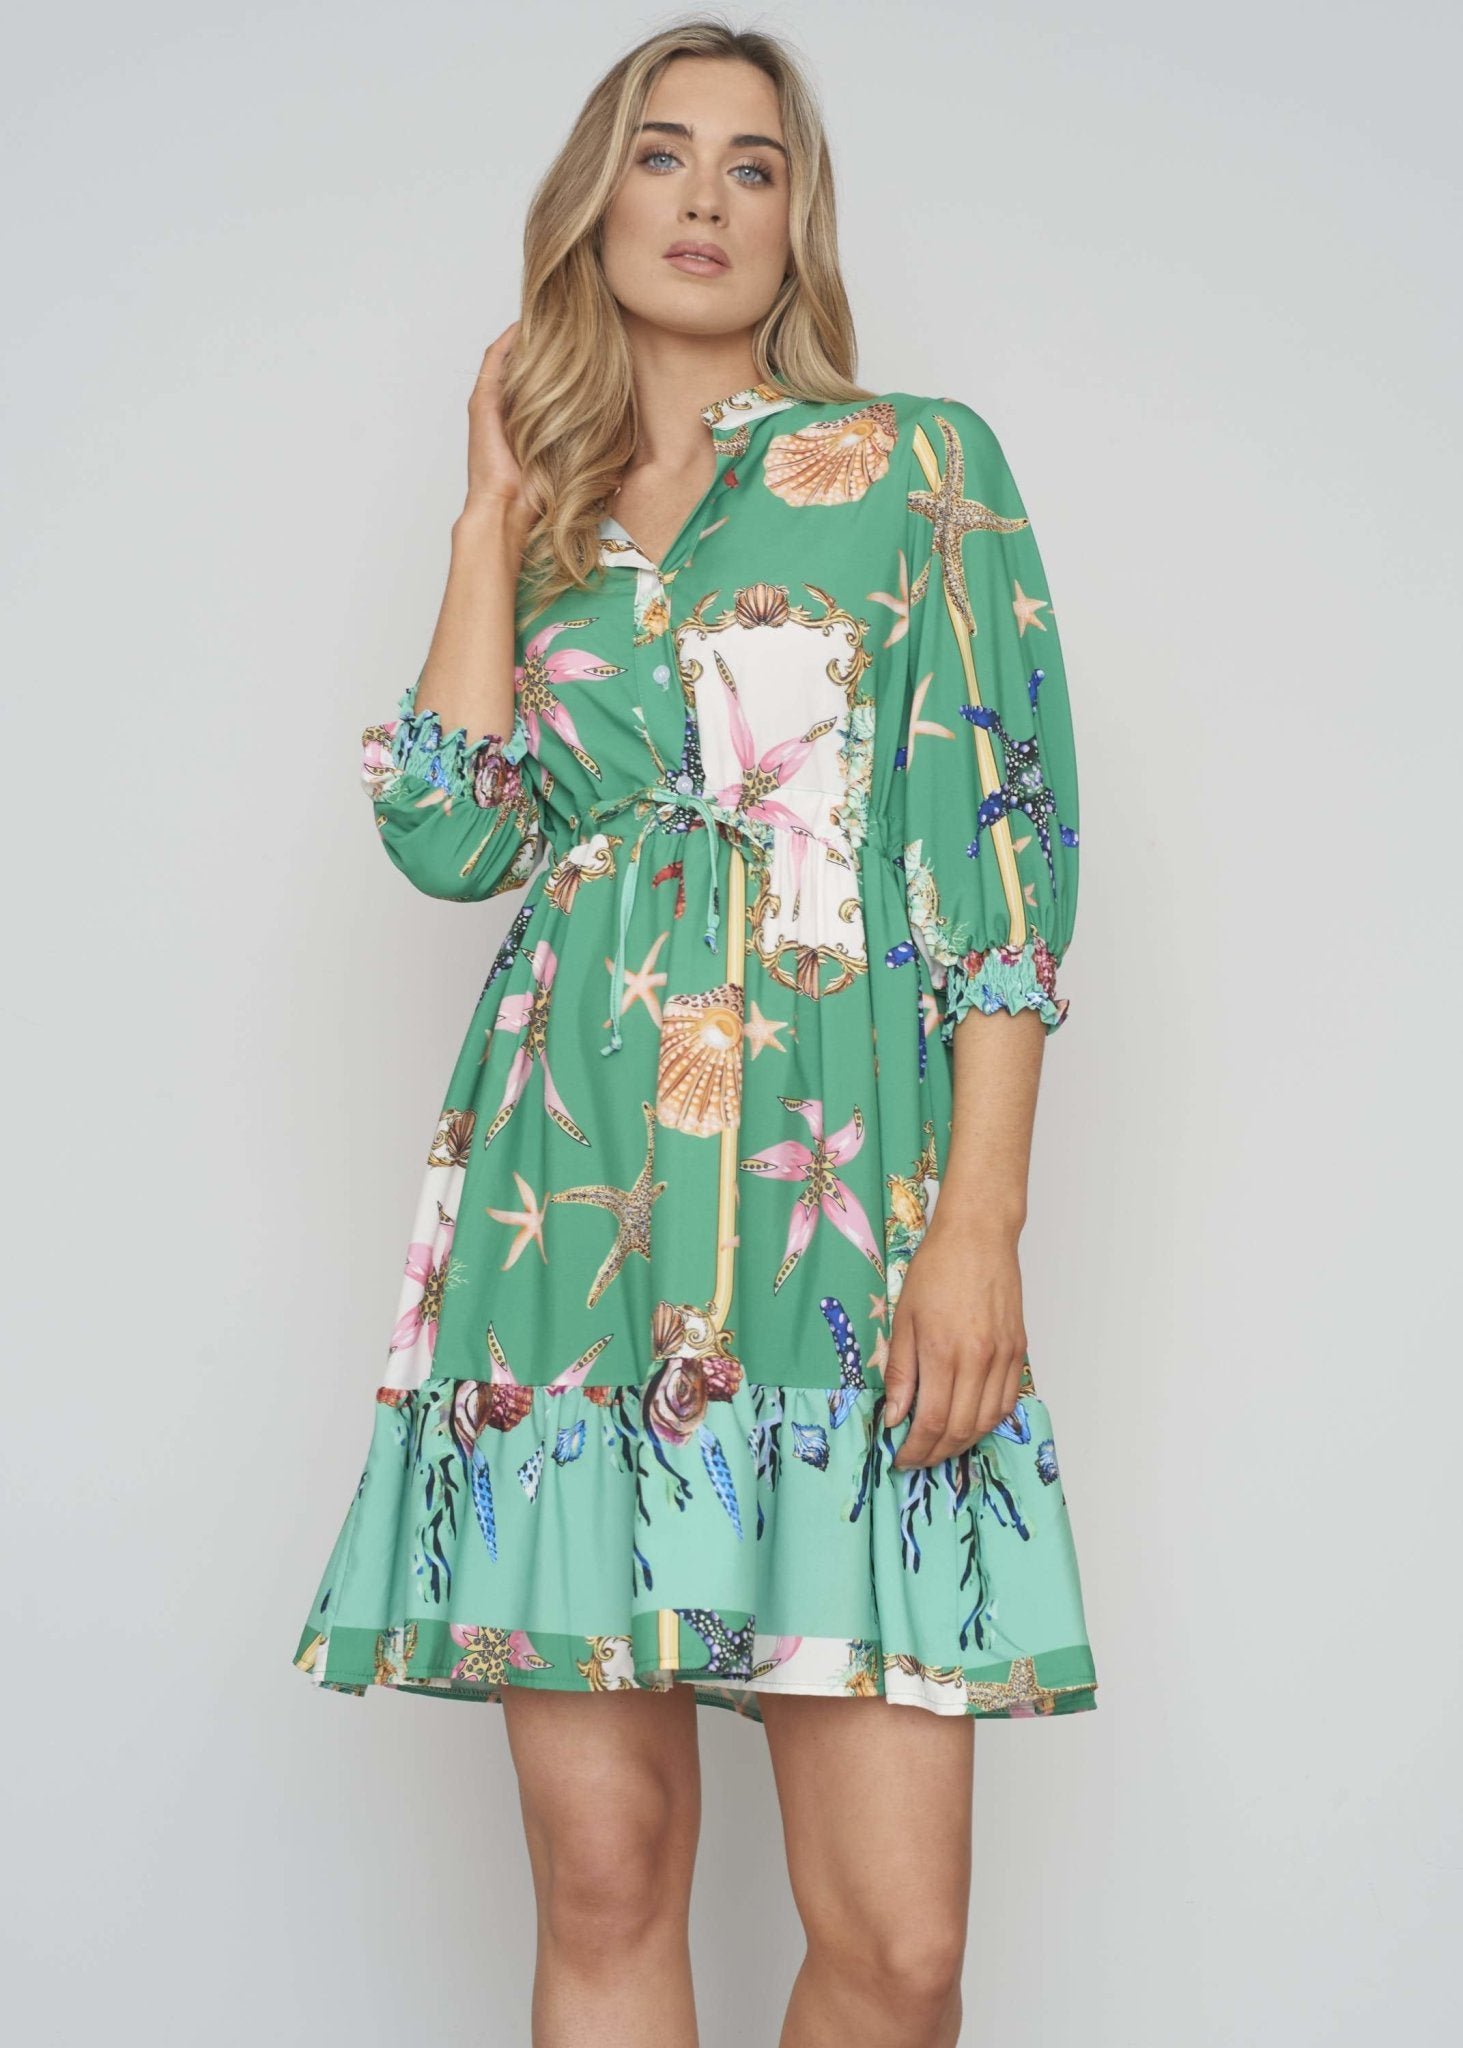 Polly Printed Tie Waist Dress In Green - The Walk in Wardrobe